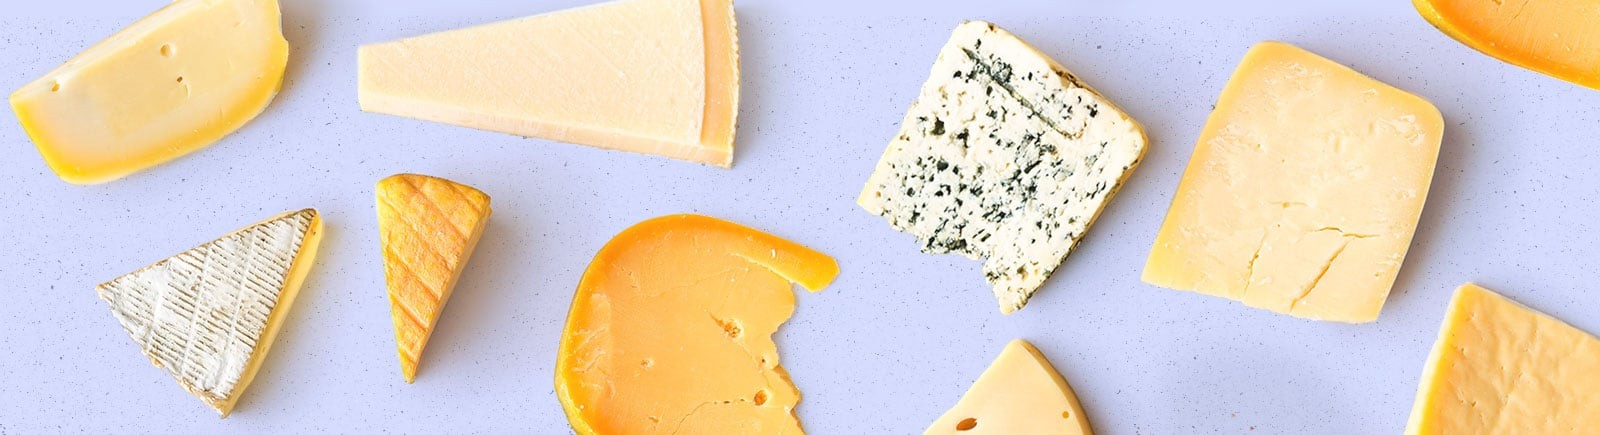 header image of various blocks and slices of cheese